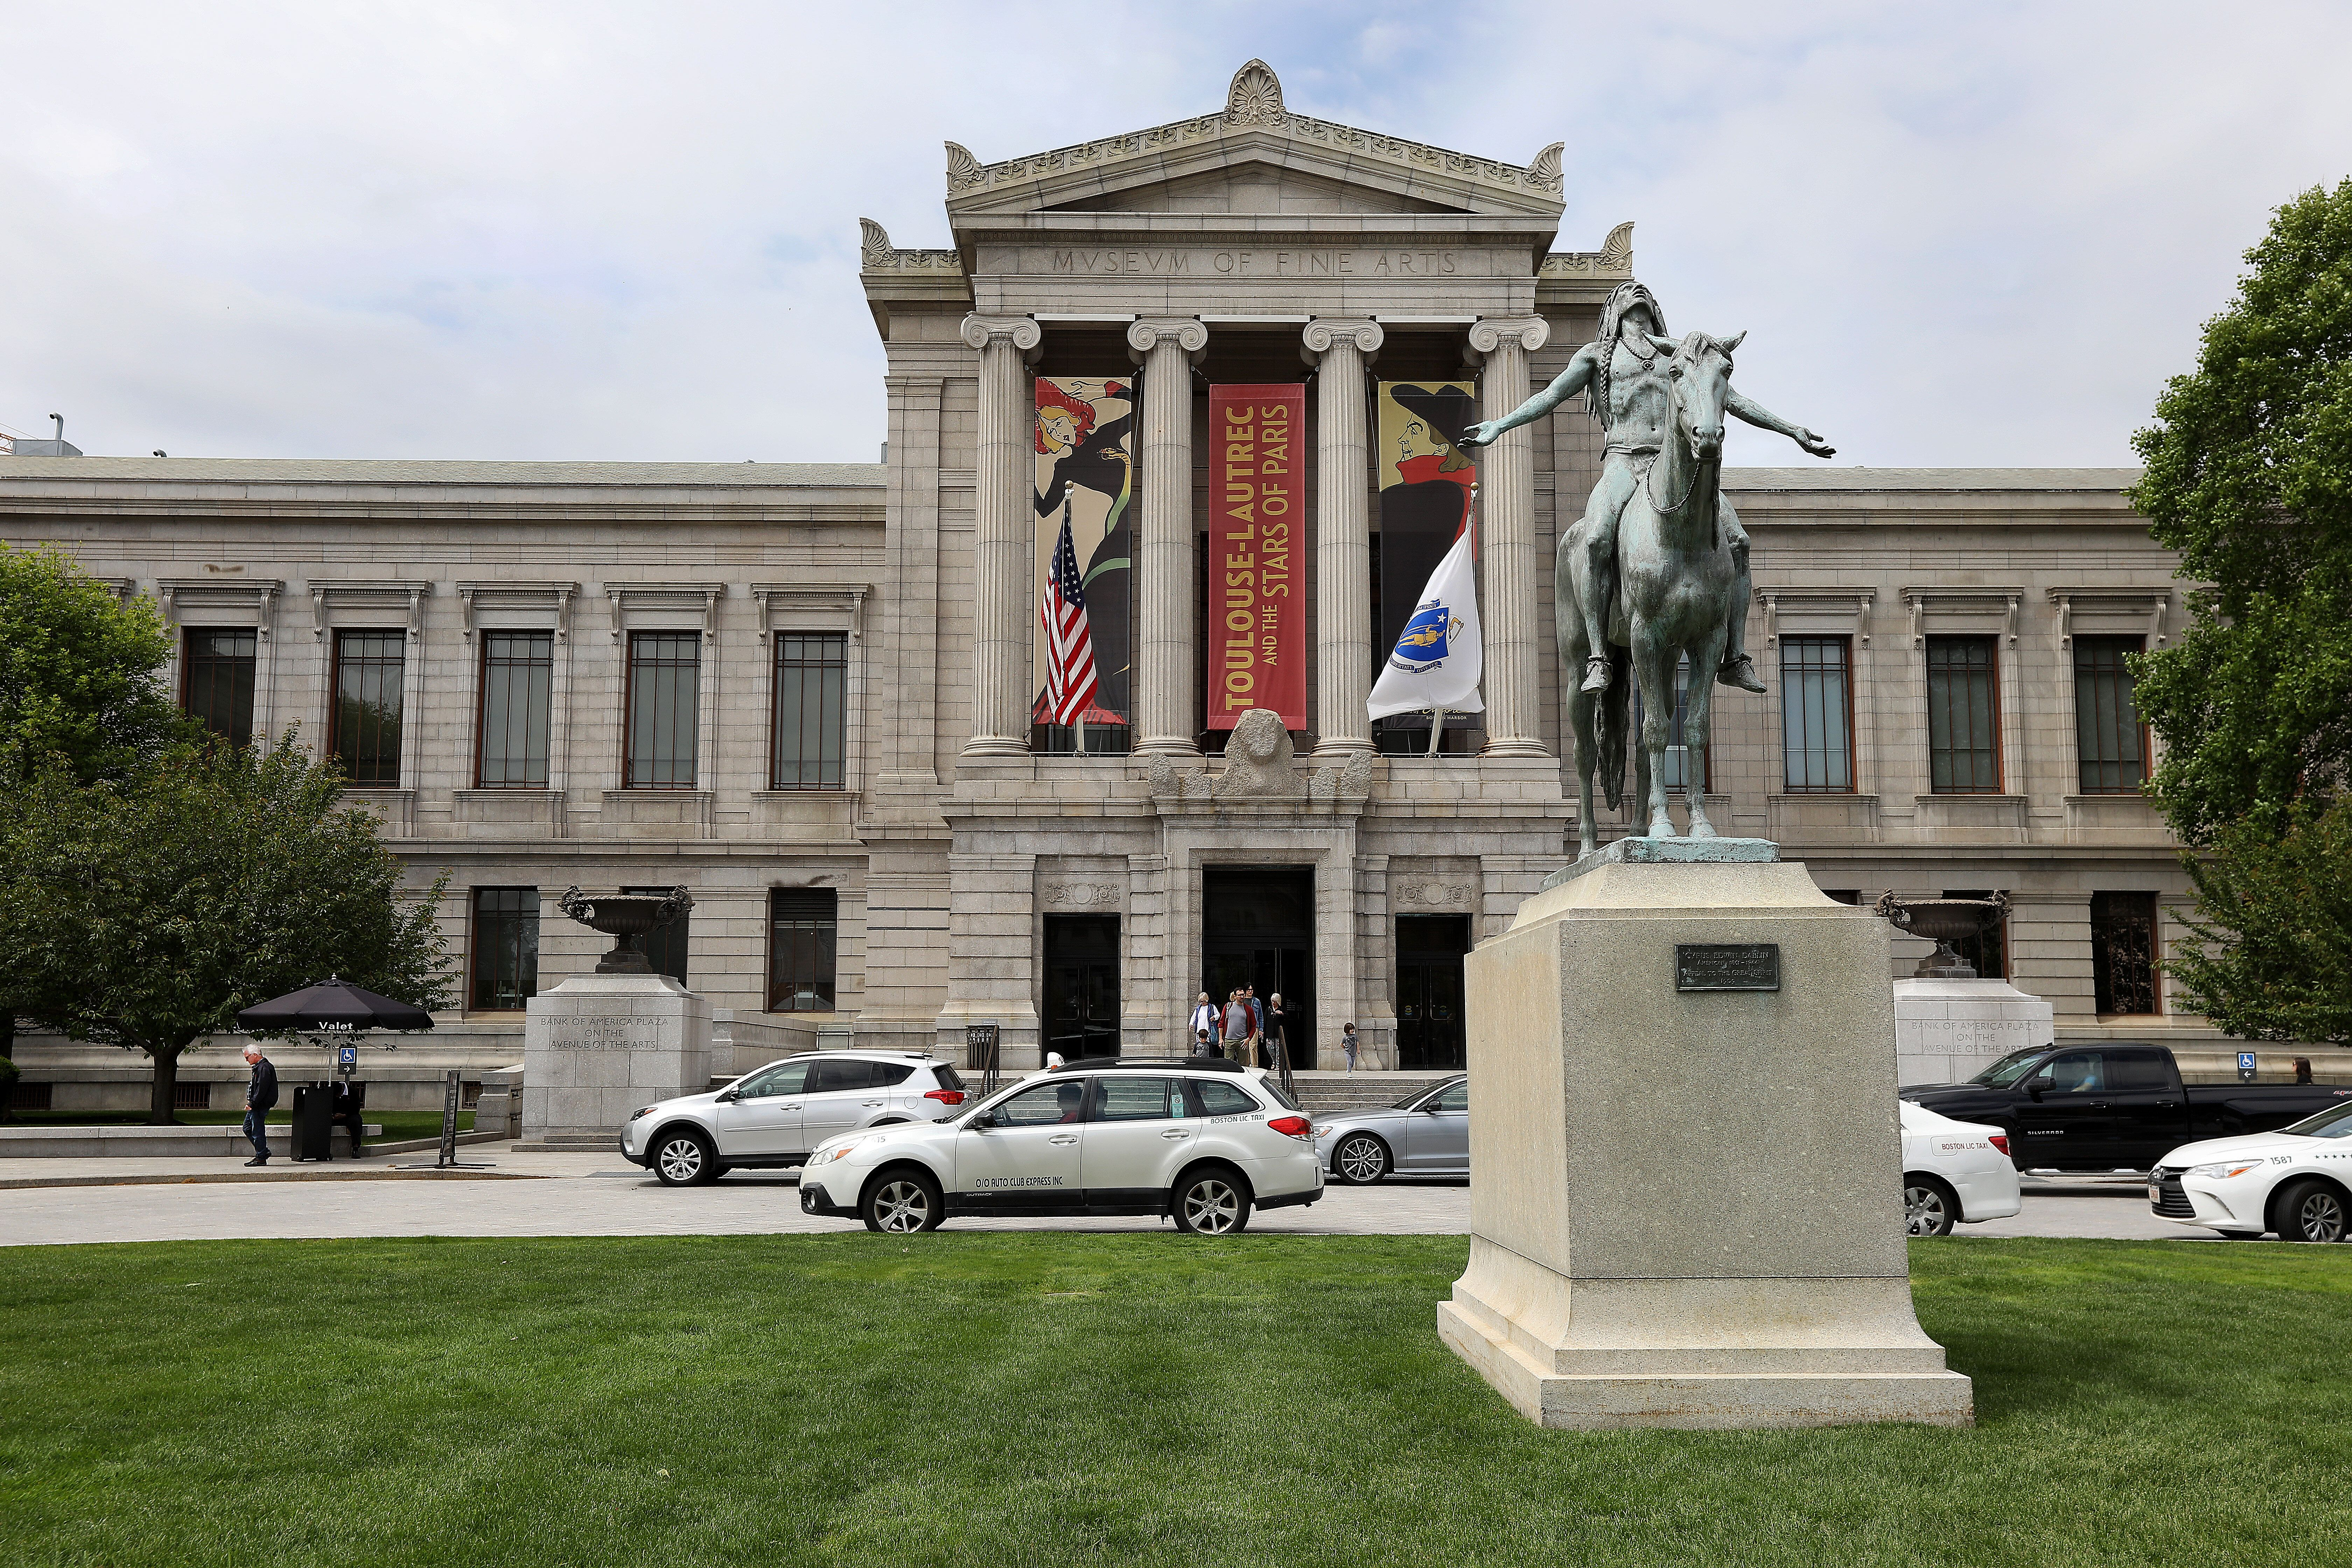 BOSTON, MA - MAY 23: The exterior of the Museum of Fine Arts, Boston is pictured on May 23, 2019. (Photo by Pat Greenhouse/The Boston Globe via Getty Images)